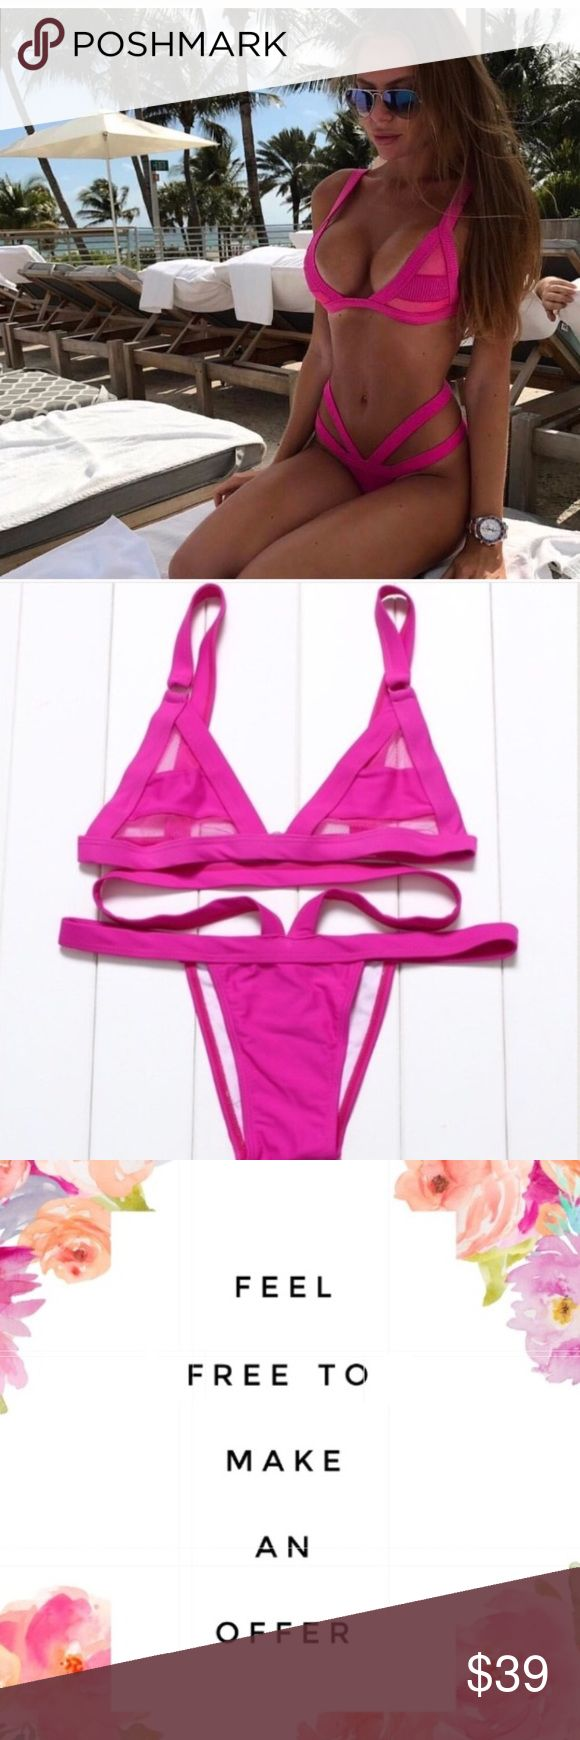 """Hot Pink Cut Out Mesh Bikini ⭐️Brand new super hot bikini  🌟Features: Mesh Panel Top, Cheeky Bottoms  💫Size Medium, runs small.  Made to fit size 6-8 Bust 34-36"""" Cup sizes B-C Waist 26-28""""  Hips 36-38""""   ✅Bundle 3 items for 15% discount  ⭐️⭐️⭐️⭐️⭐️Rating ⛔️Trades ✈️Ships same day if ordered by 10:00 PST Swim Bikinis"""